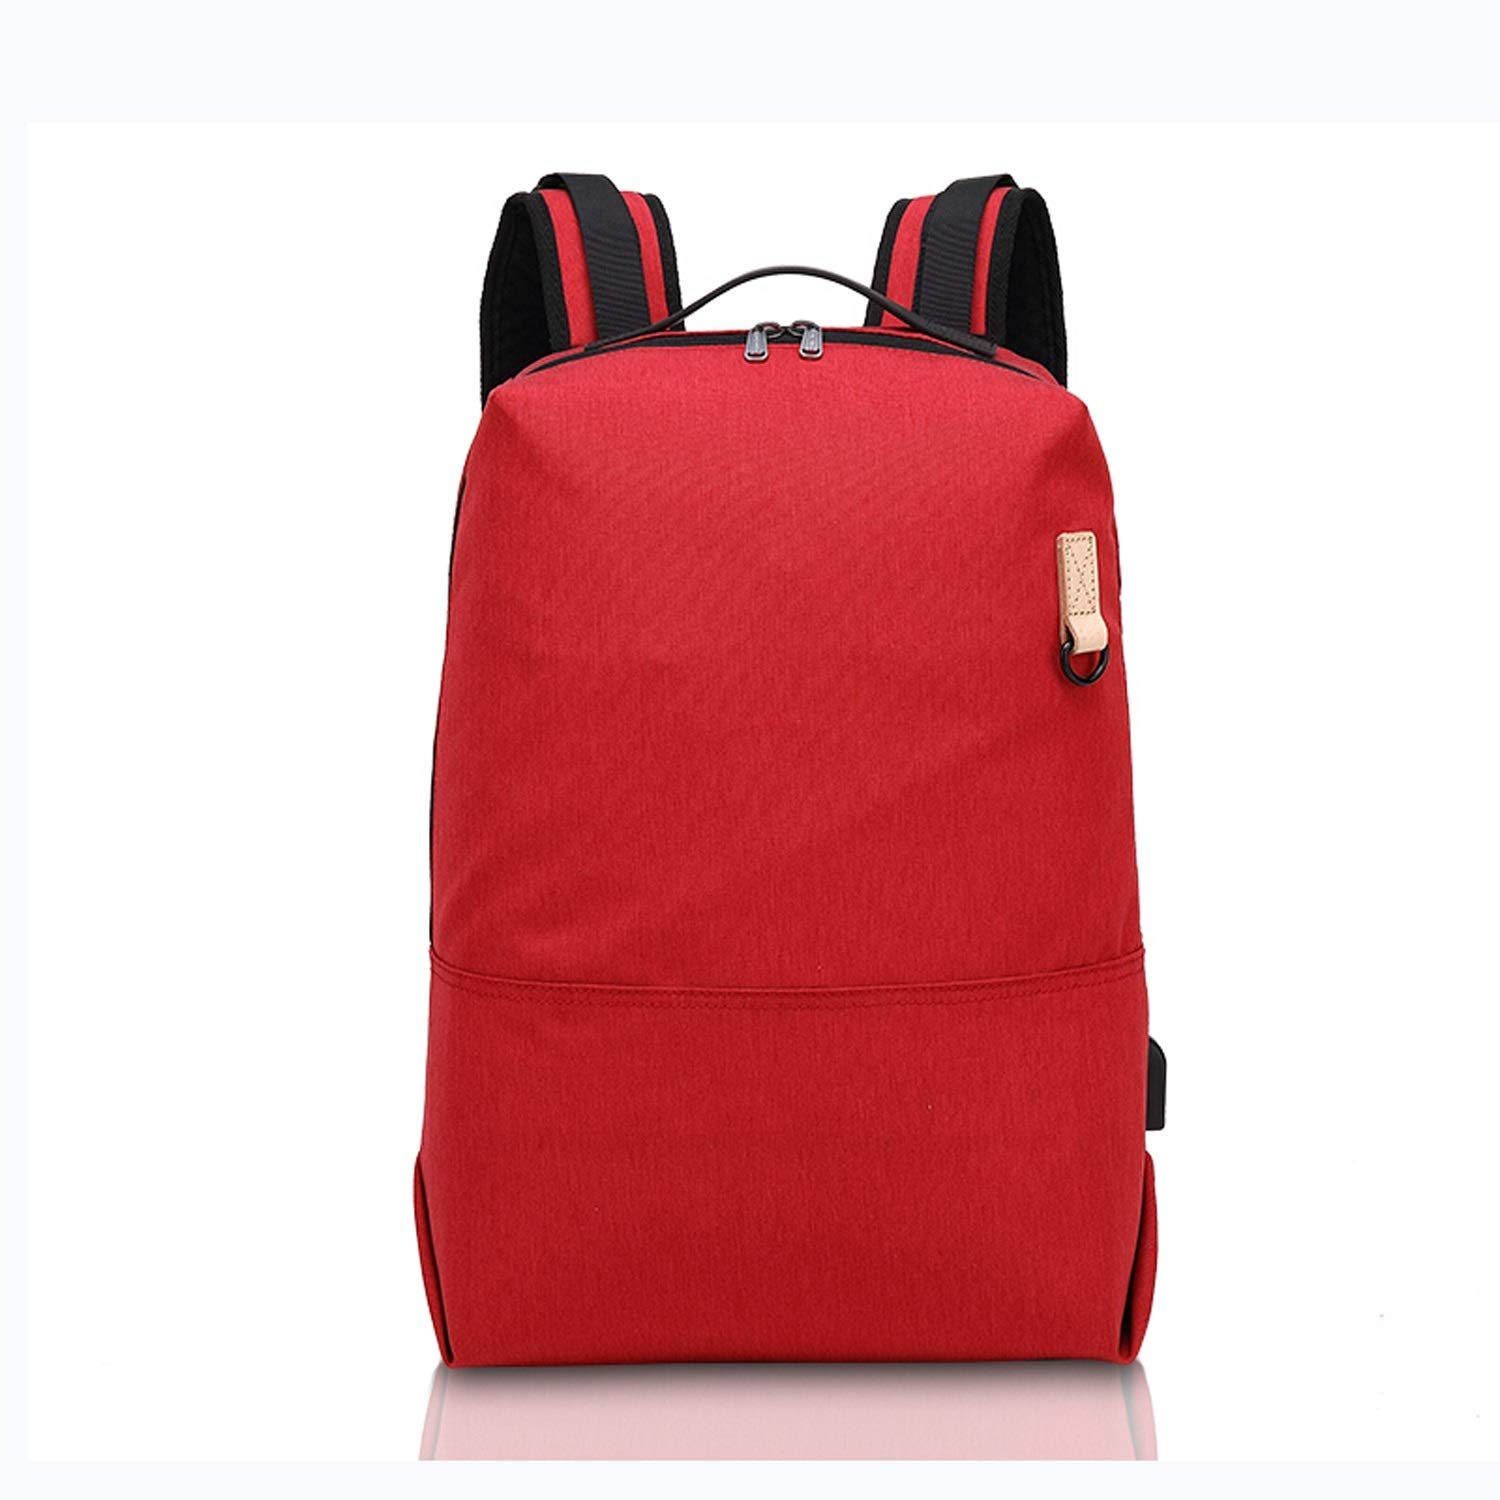 Red Nosterappou AntiTheft USB Charging Interface Travel Casual Student Bag Fashion Wild Travel Backpack Waterproof Backpack Unisex (color   Navy)